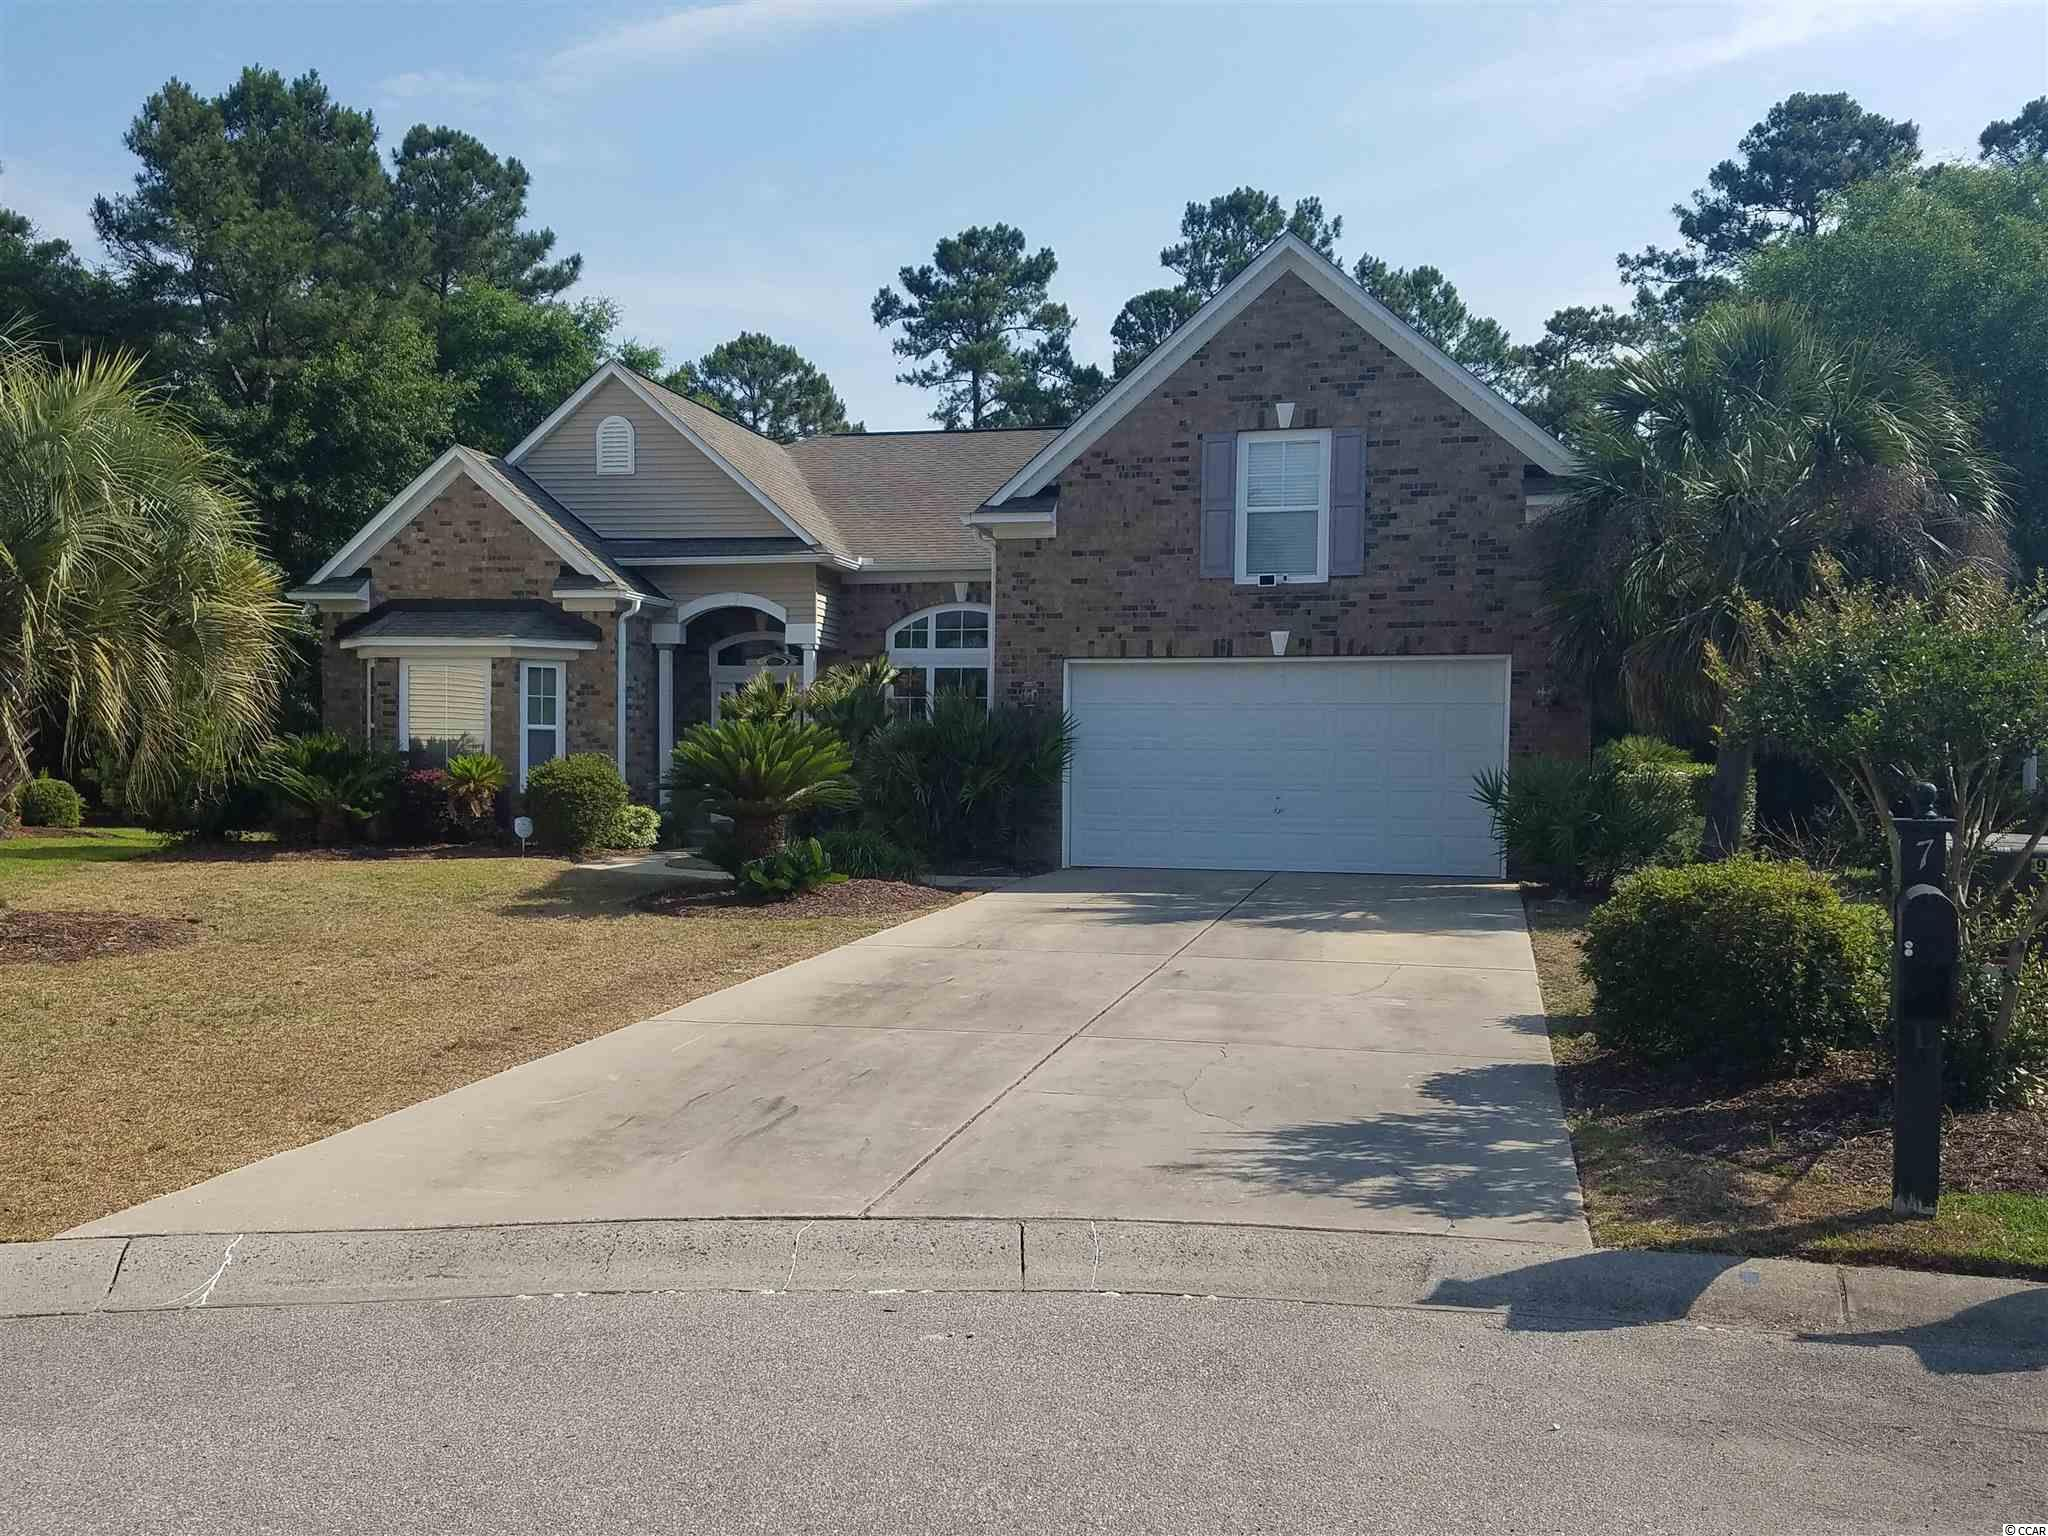 Linksbrook in Murrells Inlet!  This 4br/3.5ba brick home sits in a cul-de-sac and has an over 1/2 acre lot. This beautiful home features a brick exterior, a 2 car garage, wood floors, upgraded fixtures, vaulted/tray ceilings with crown molding, a bedroom set up as an office with built in's that will convey, a formal dining room, a huge kitchen with a work island and breakfast bar, and a large finished carolina room.  The amenities in Linksbrook are an outdoor pool, a clubhouse, and tennis courts.